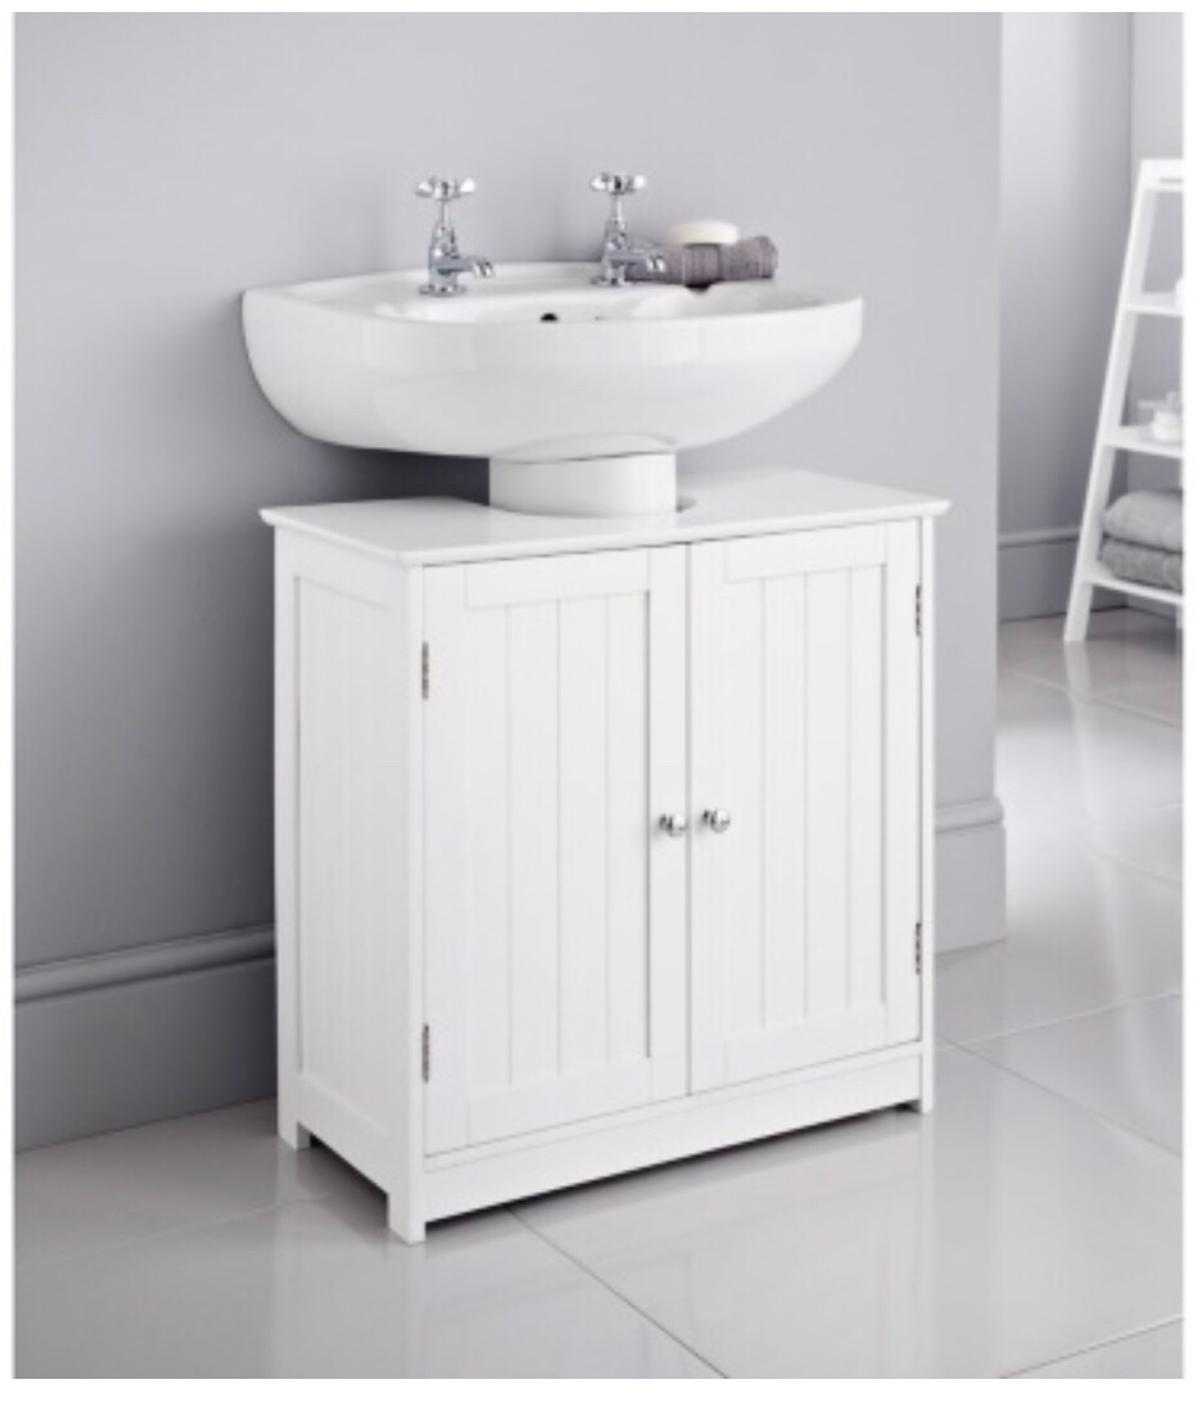 Picture of: Under Sink Cabinet In E5 London For 30 00 For Sale Shpock